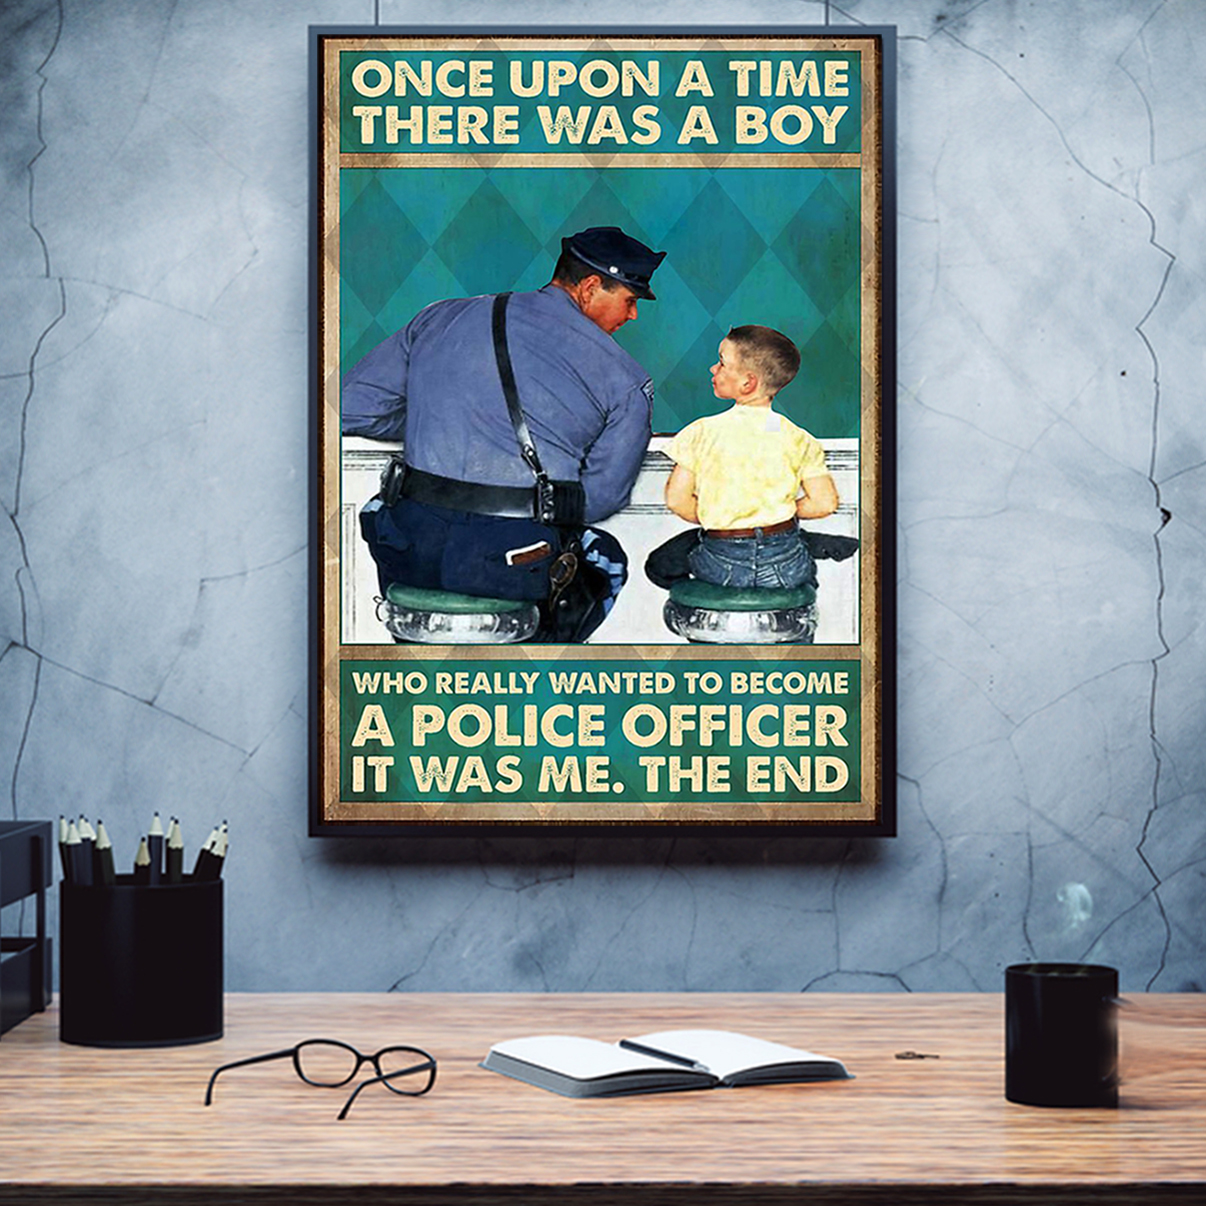 Once upon a time there was a boy who really wanted to become a police officer poster A2